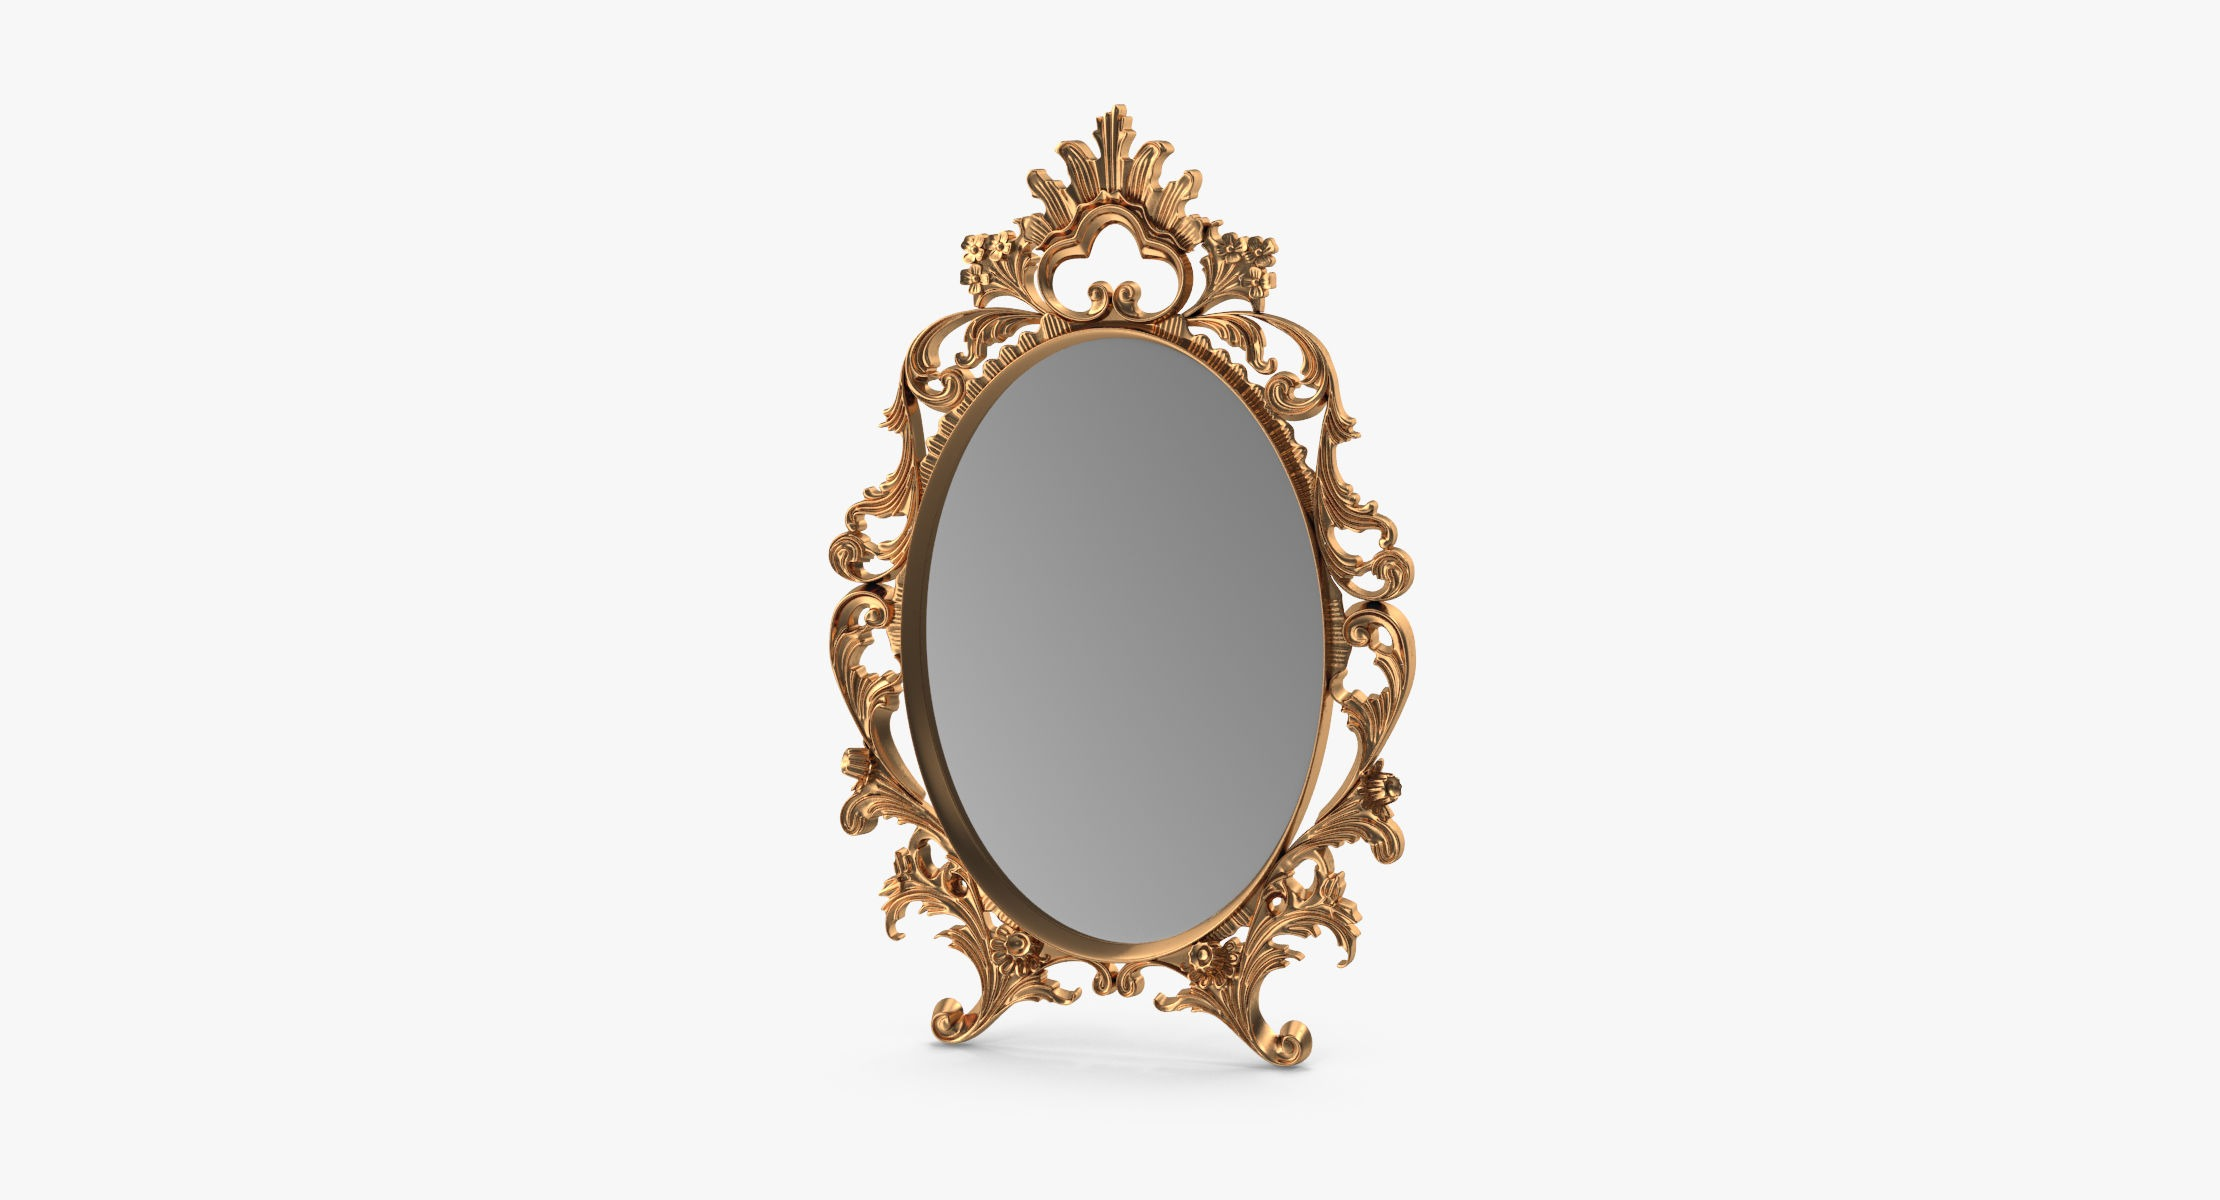 Ornate Mirror - reel 1